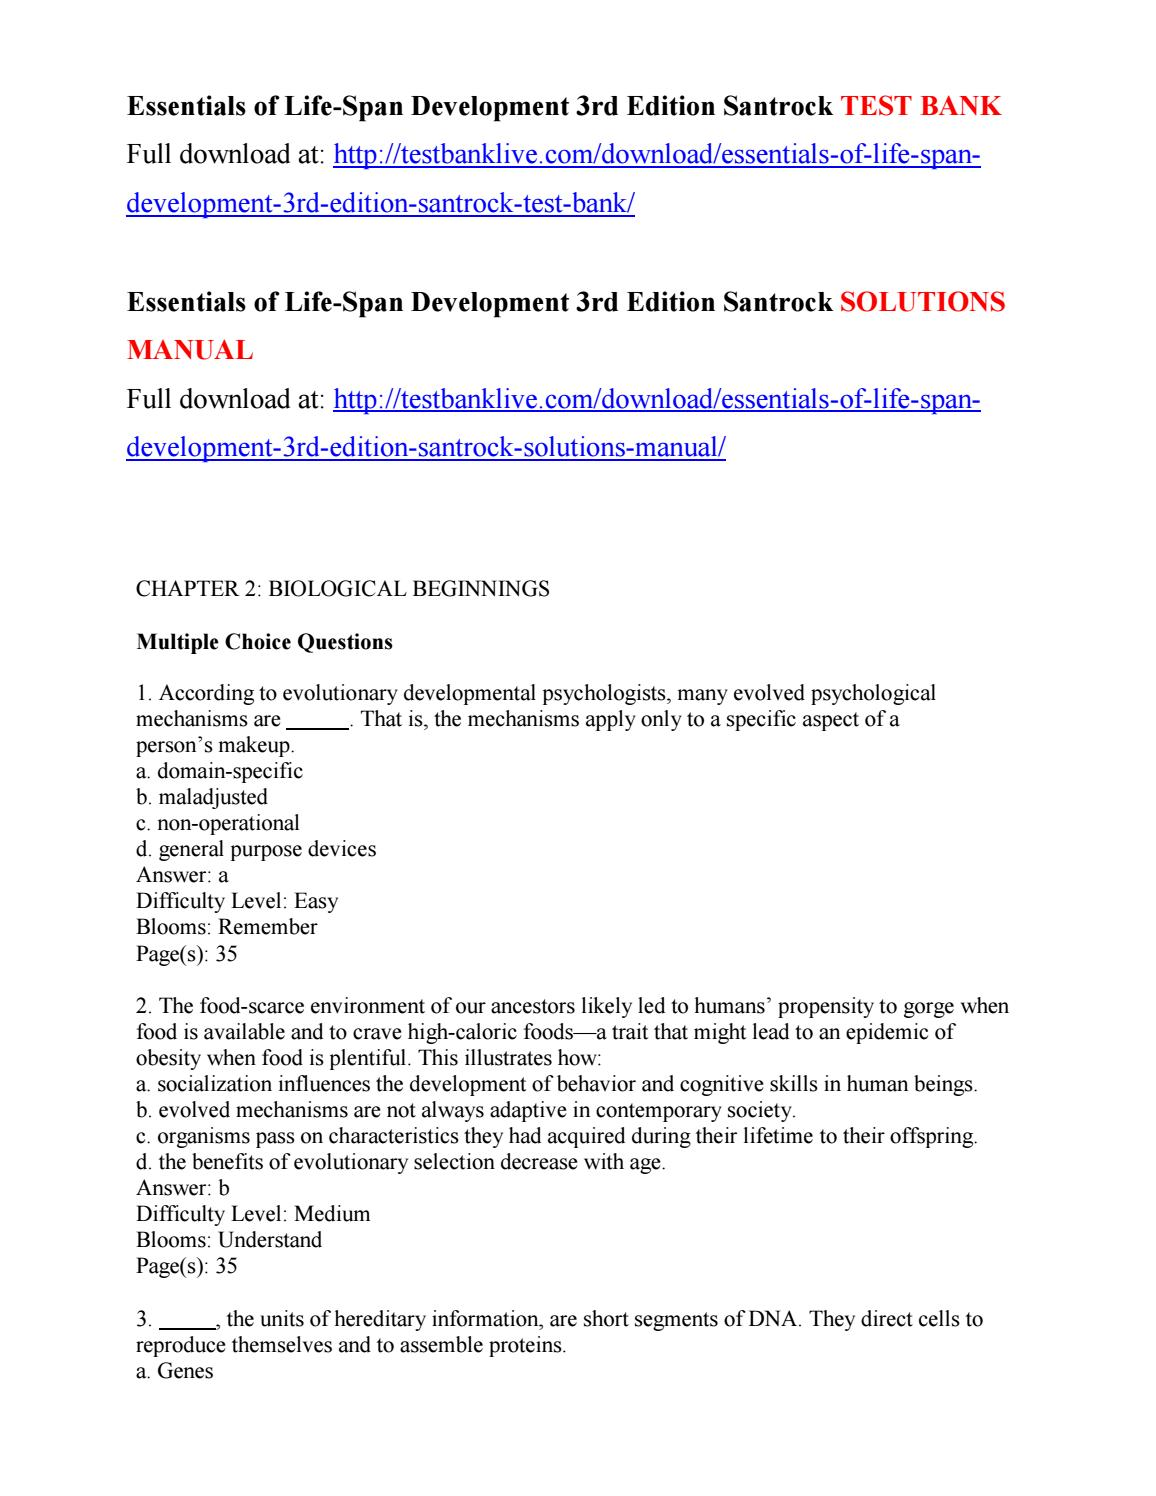 Essentials of life span development 3rd edition santrock test bank by  danisaly - issuu